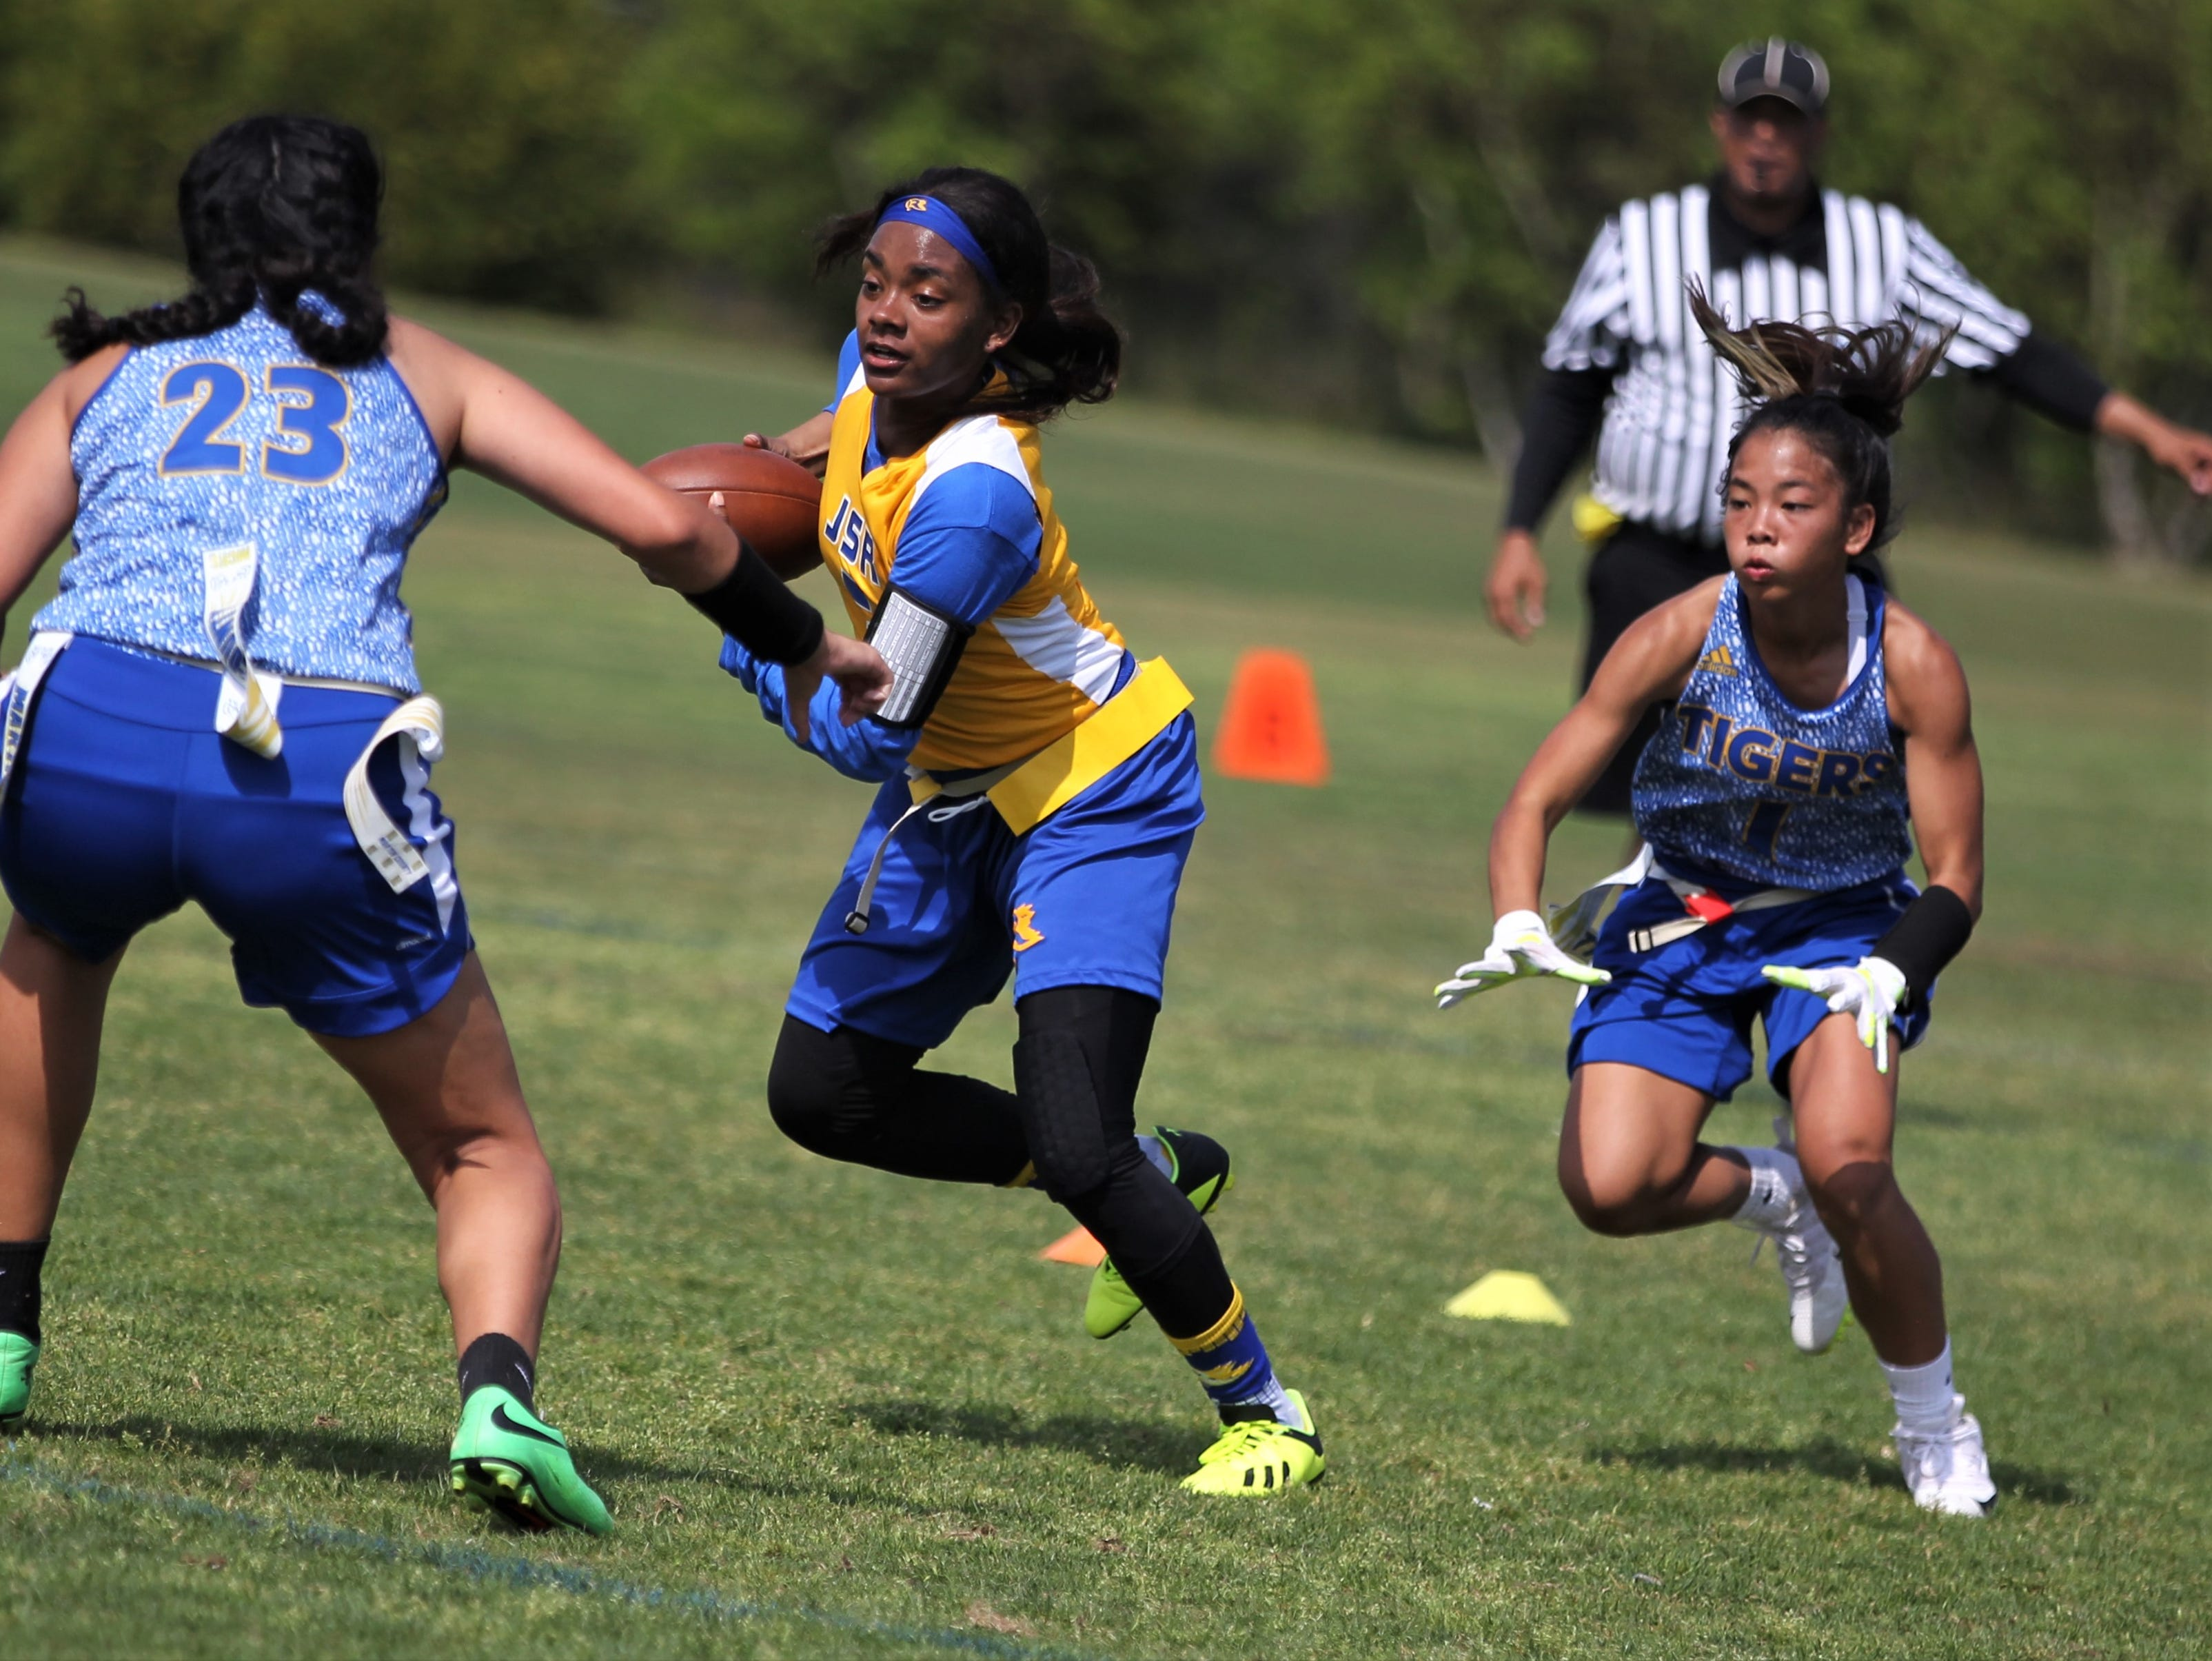 Rickards senior Denia Love runs after a catch during the 2019 Capital City Classic flag football tournament at the FSU Rec SportsPlex on April 6, 2019.